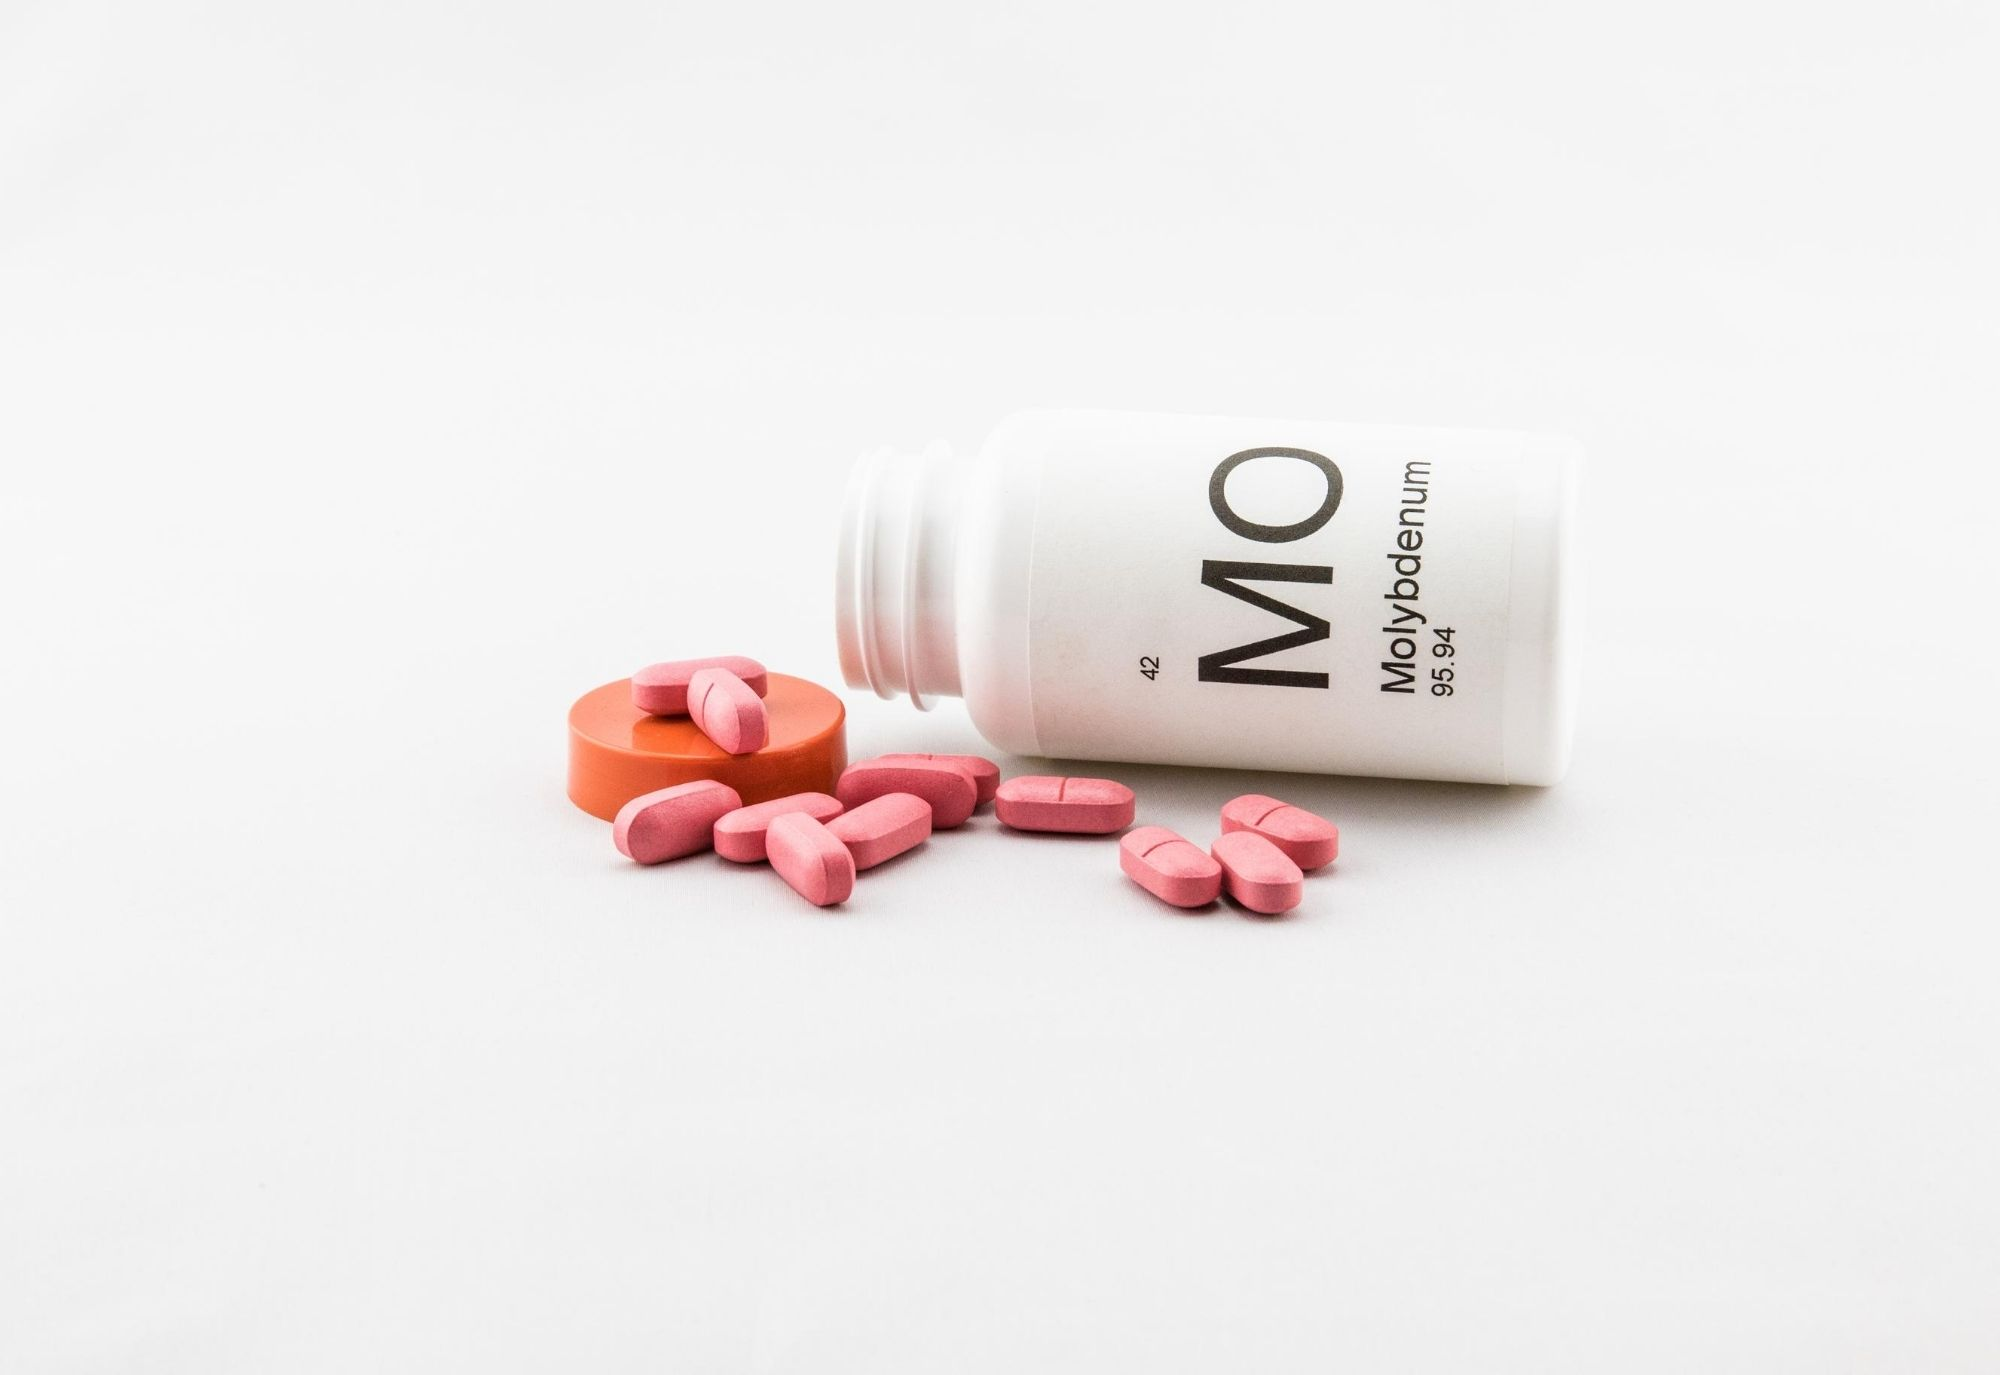 Molybdenum : an essential trace element for the body